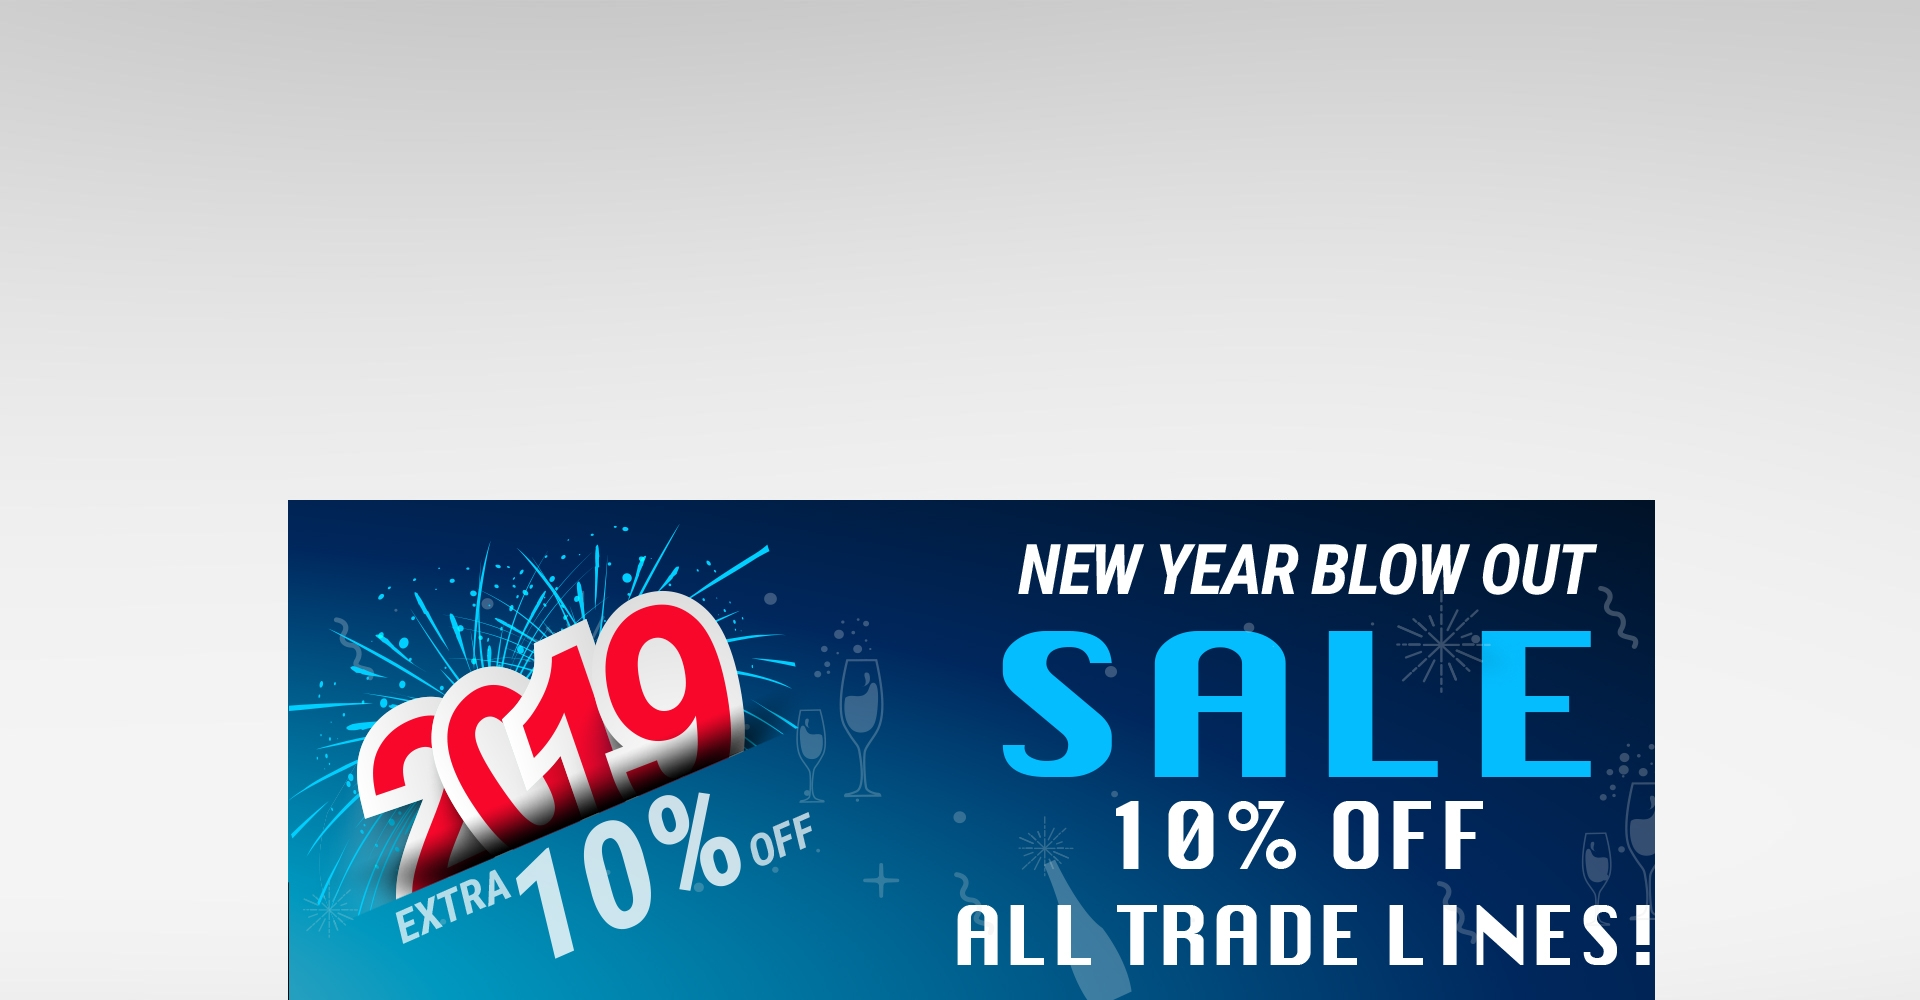 New-Yeas-Authorized-User-Trade-Line-Blowout-Sale